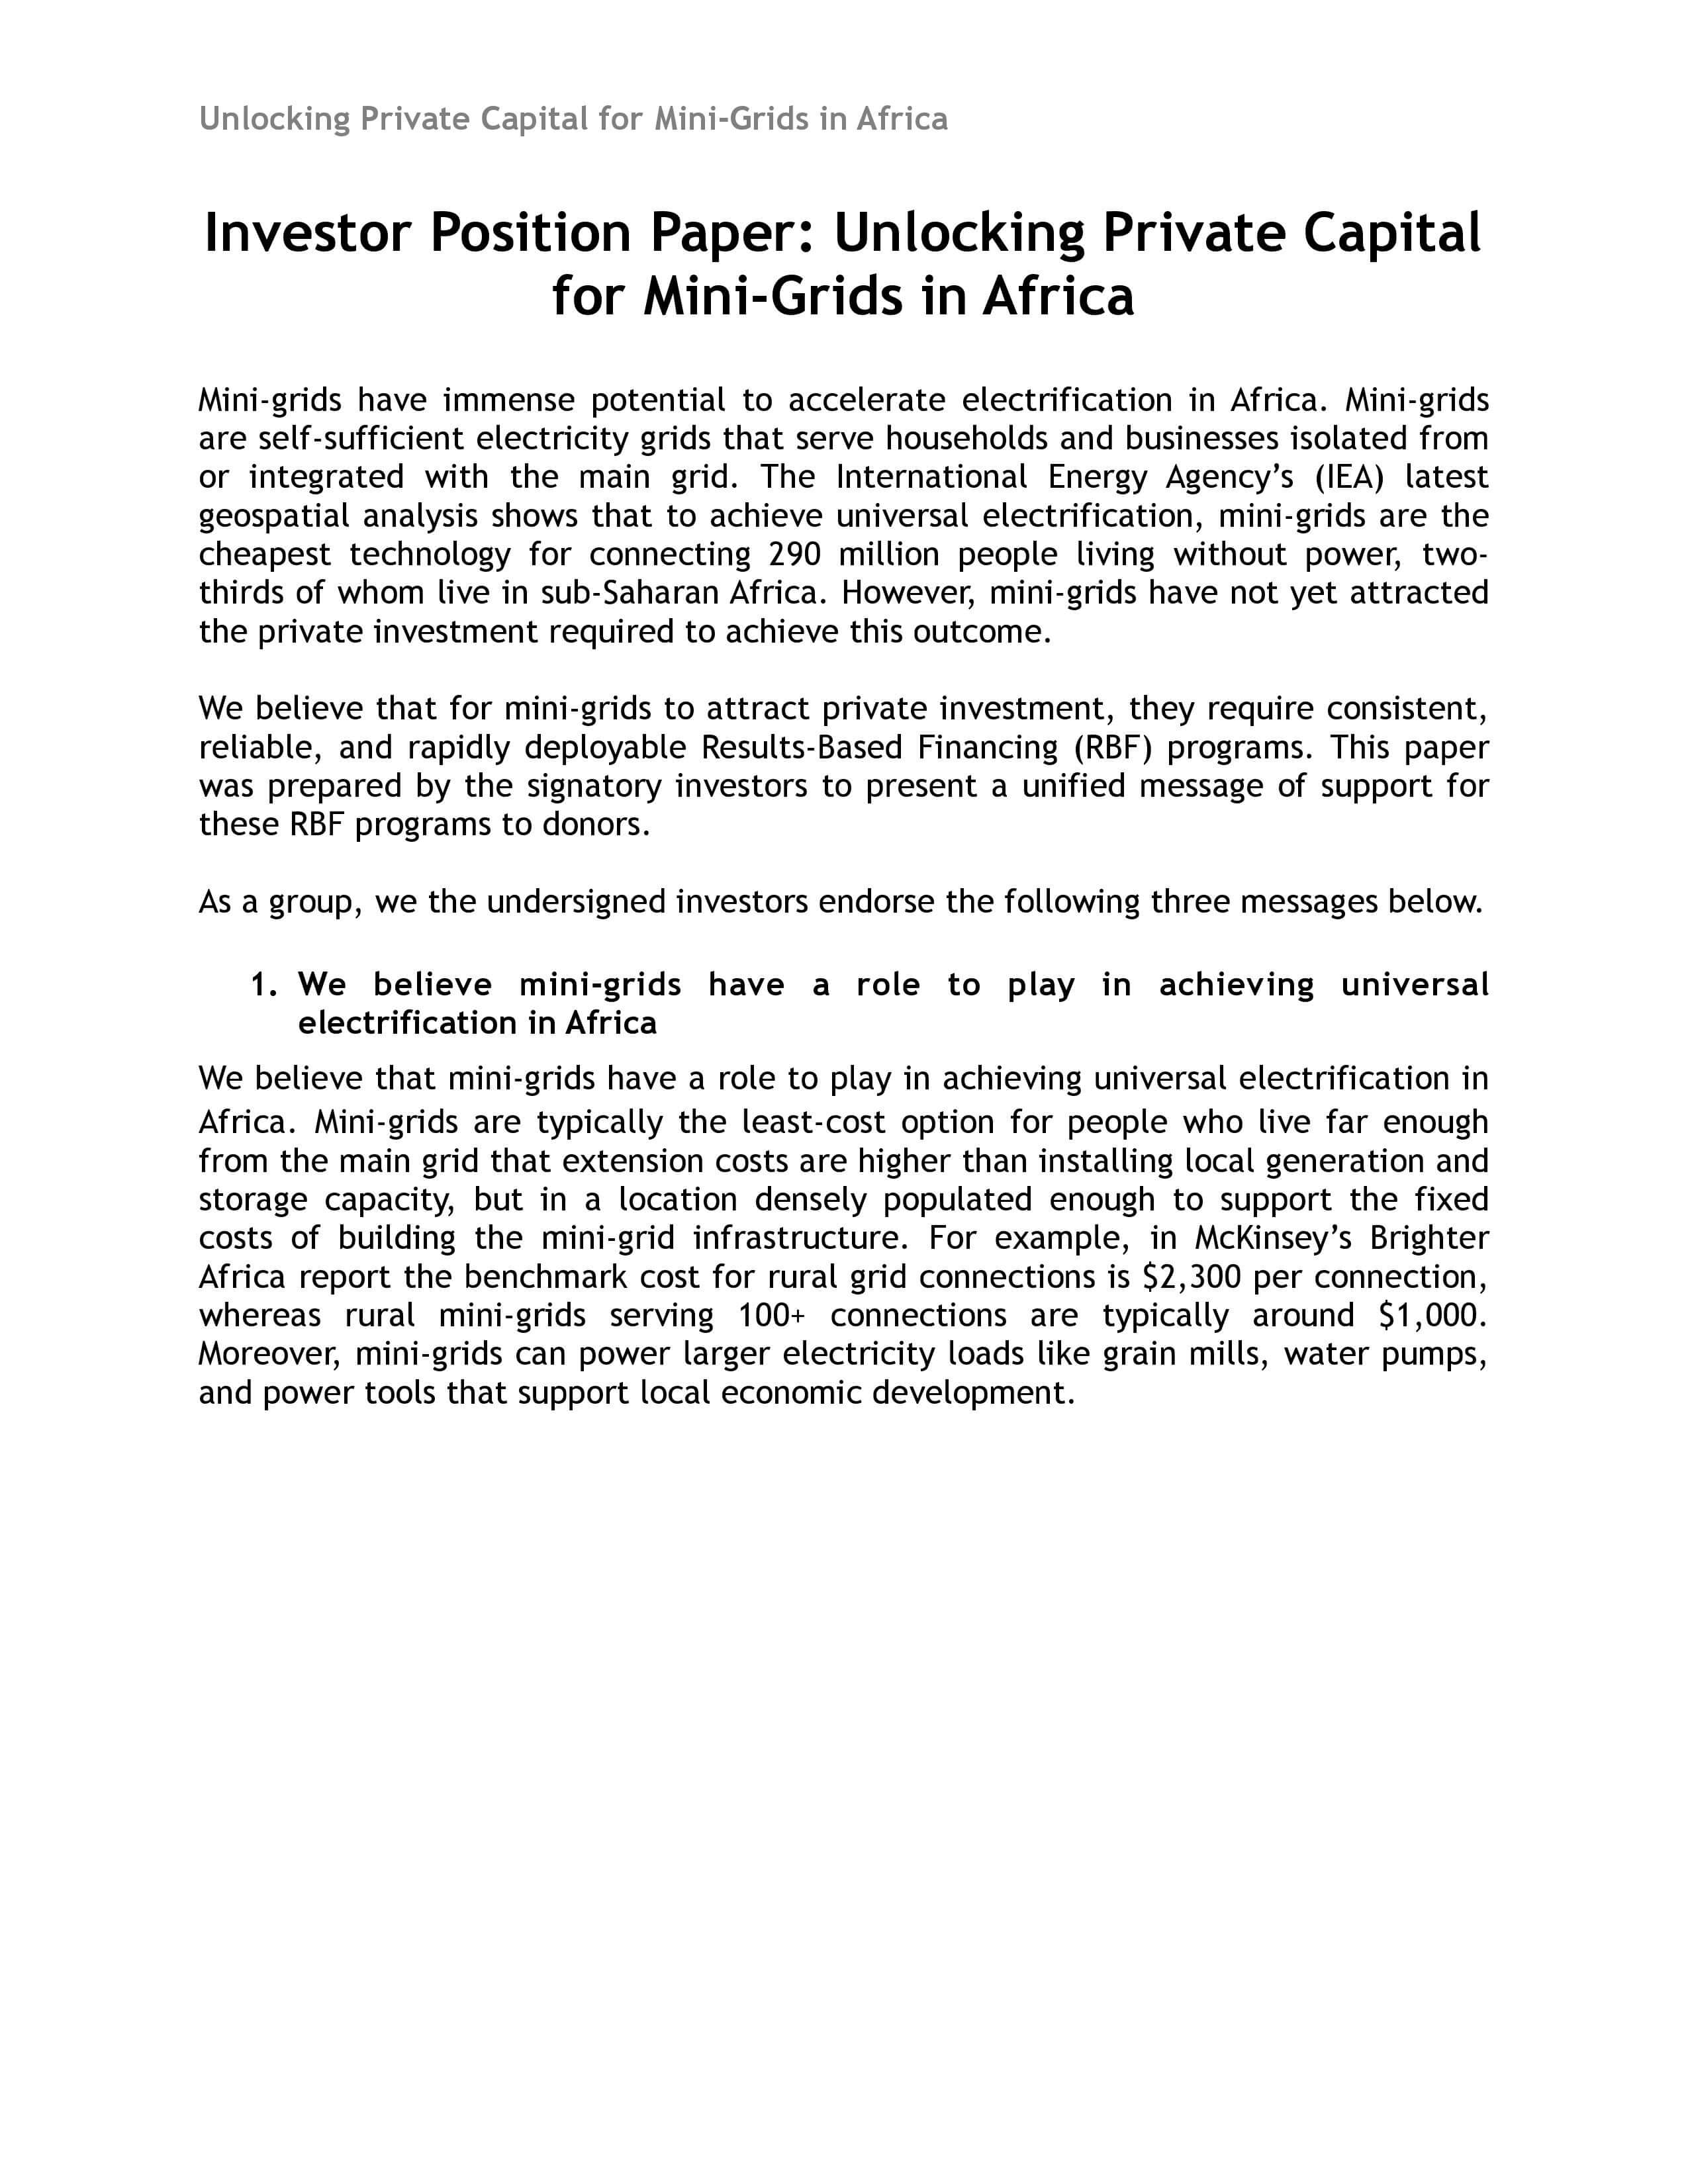 Investor Position Paper: Unlocking Private Capital for Mini-Grids in Africa.jpg